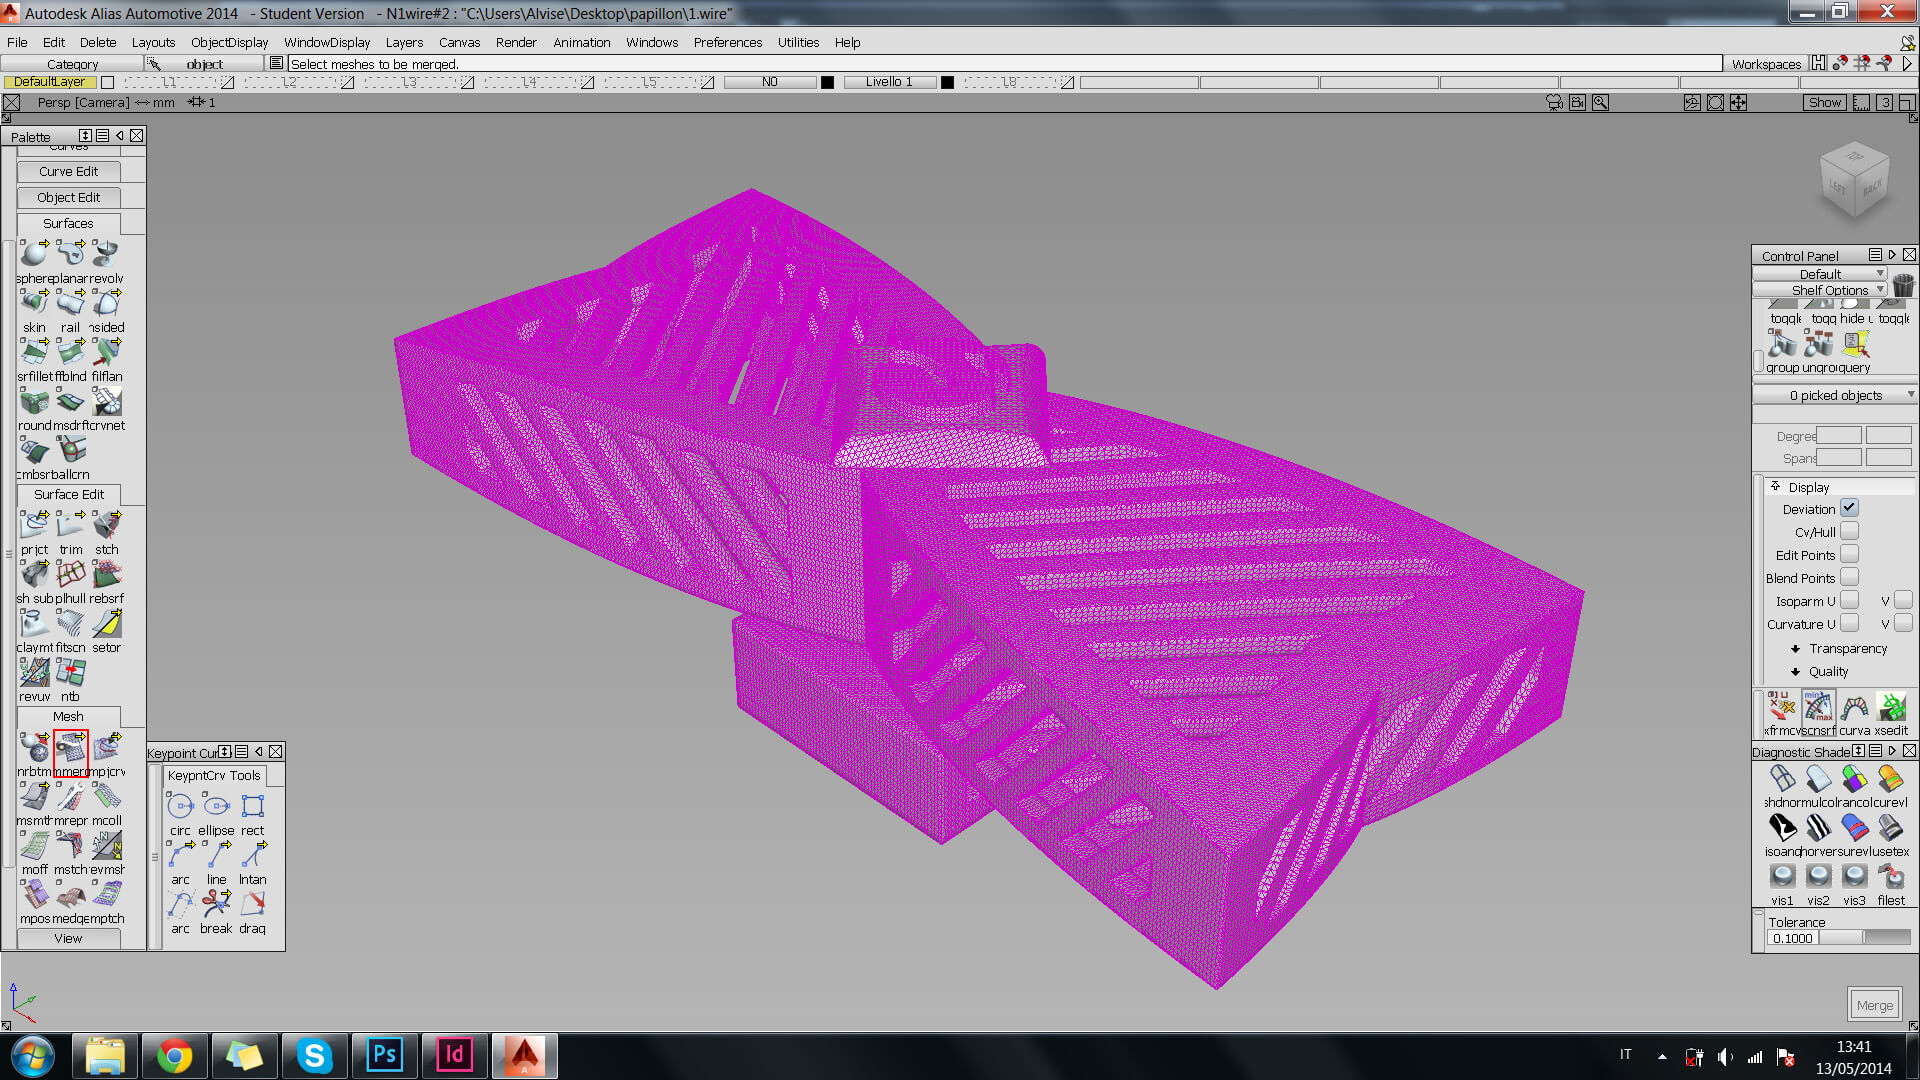 alias tutorial Alias tutorial for 3d printing prepare your model for 3d printing: learn how to create, analyze, export and correct your 3d models.